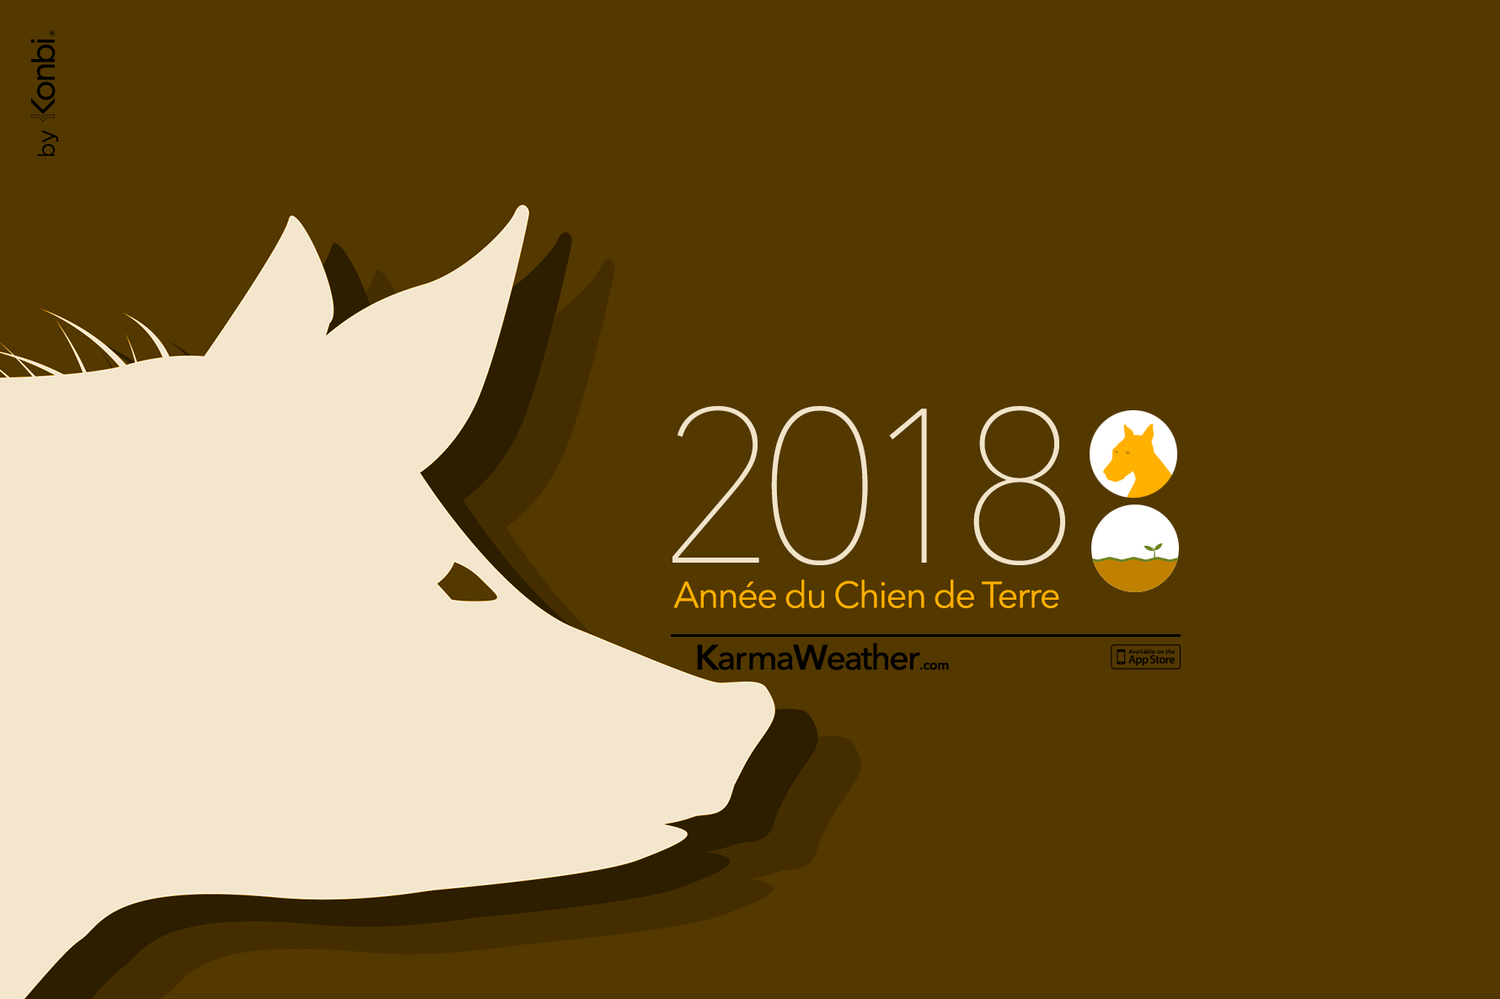 cochon-sanglier-2018-horoscope-chinois-par-karmaweather.png